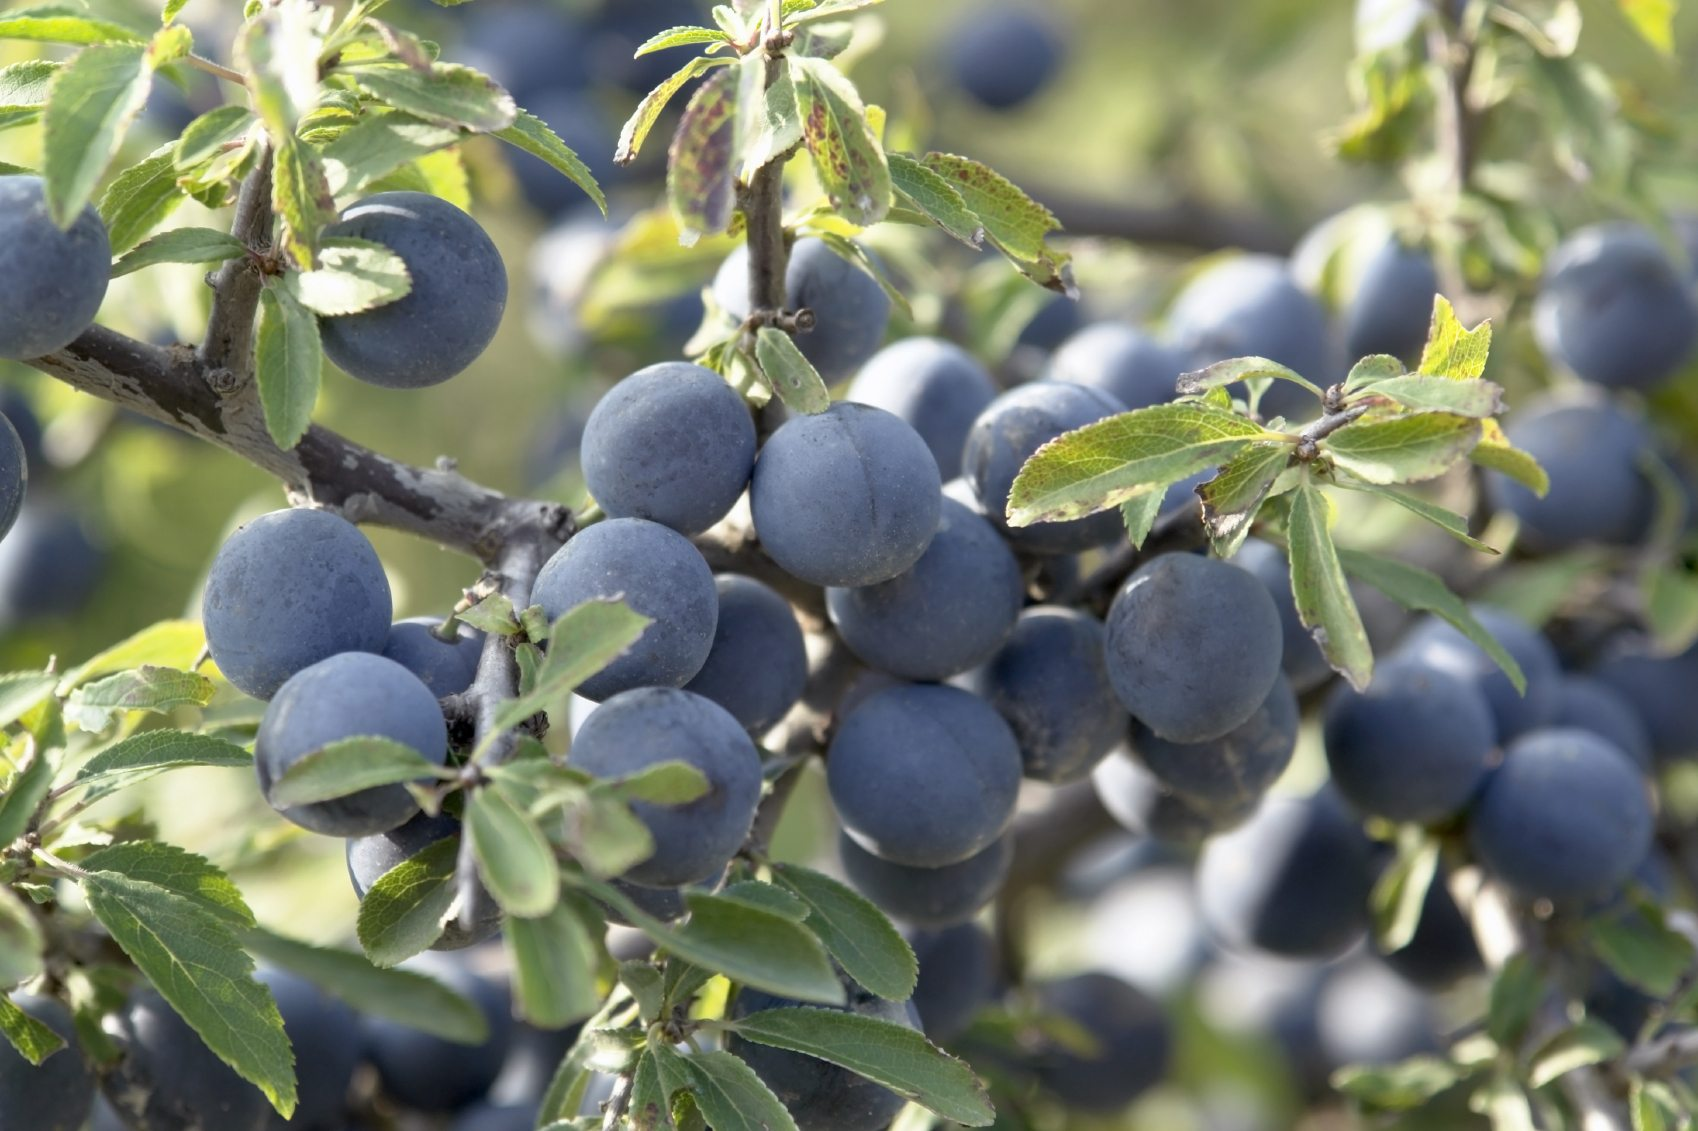 Office Plant Information About Blackthorn Plants What Are Uses For